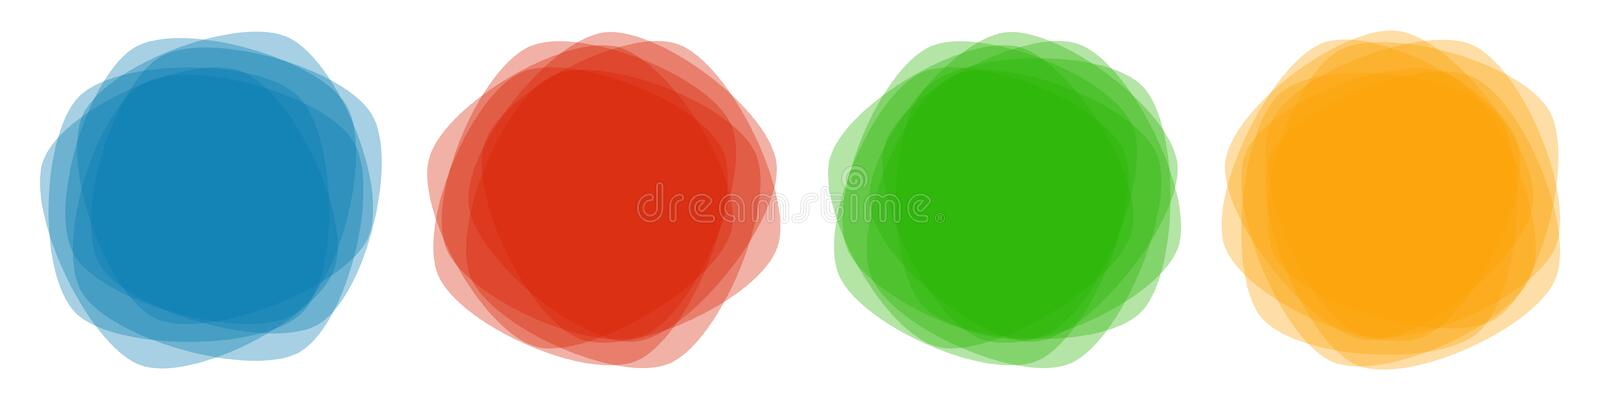 Set of colorful round abstract banners overlay shapes, design elements - vector. Set of colorful round abstract banners overlay shapes, design elements - stock vector illustration